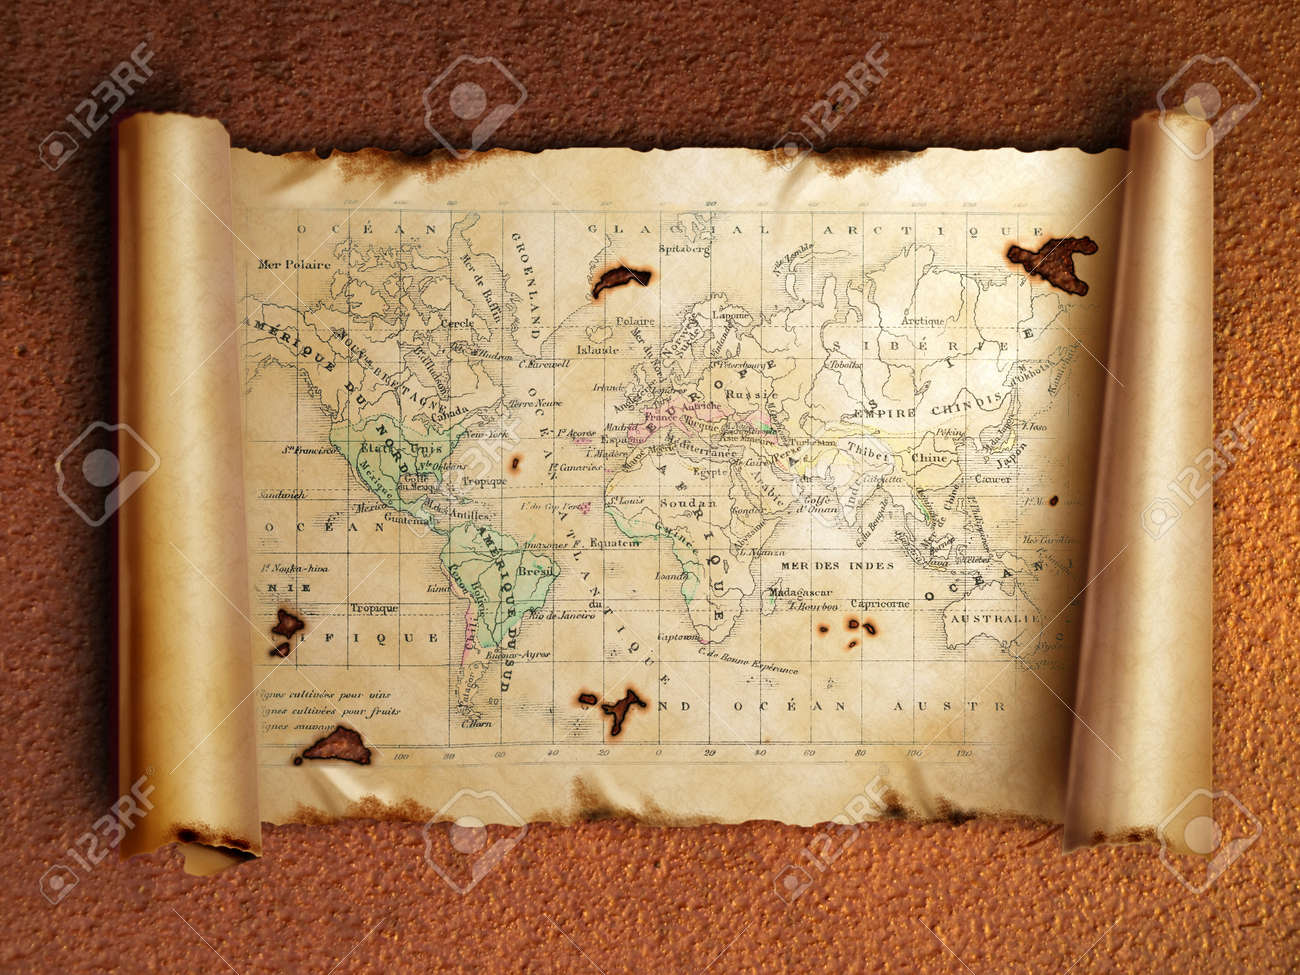 ancient scroll map with curled edges, on the old rusty background Stock Photo - 11976862